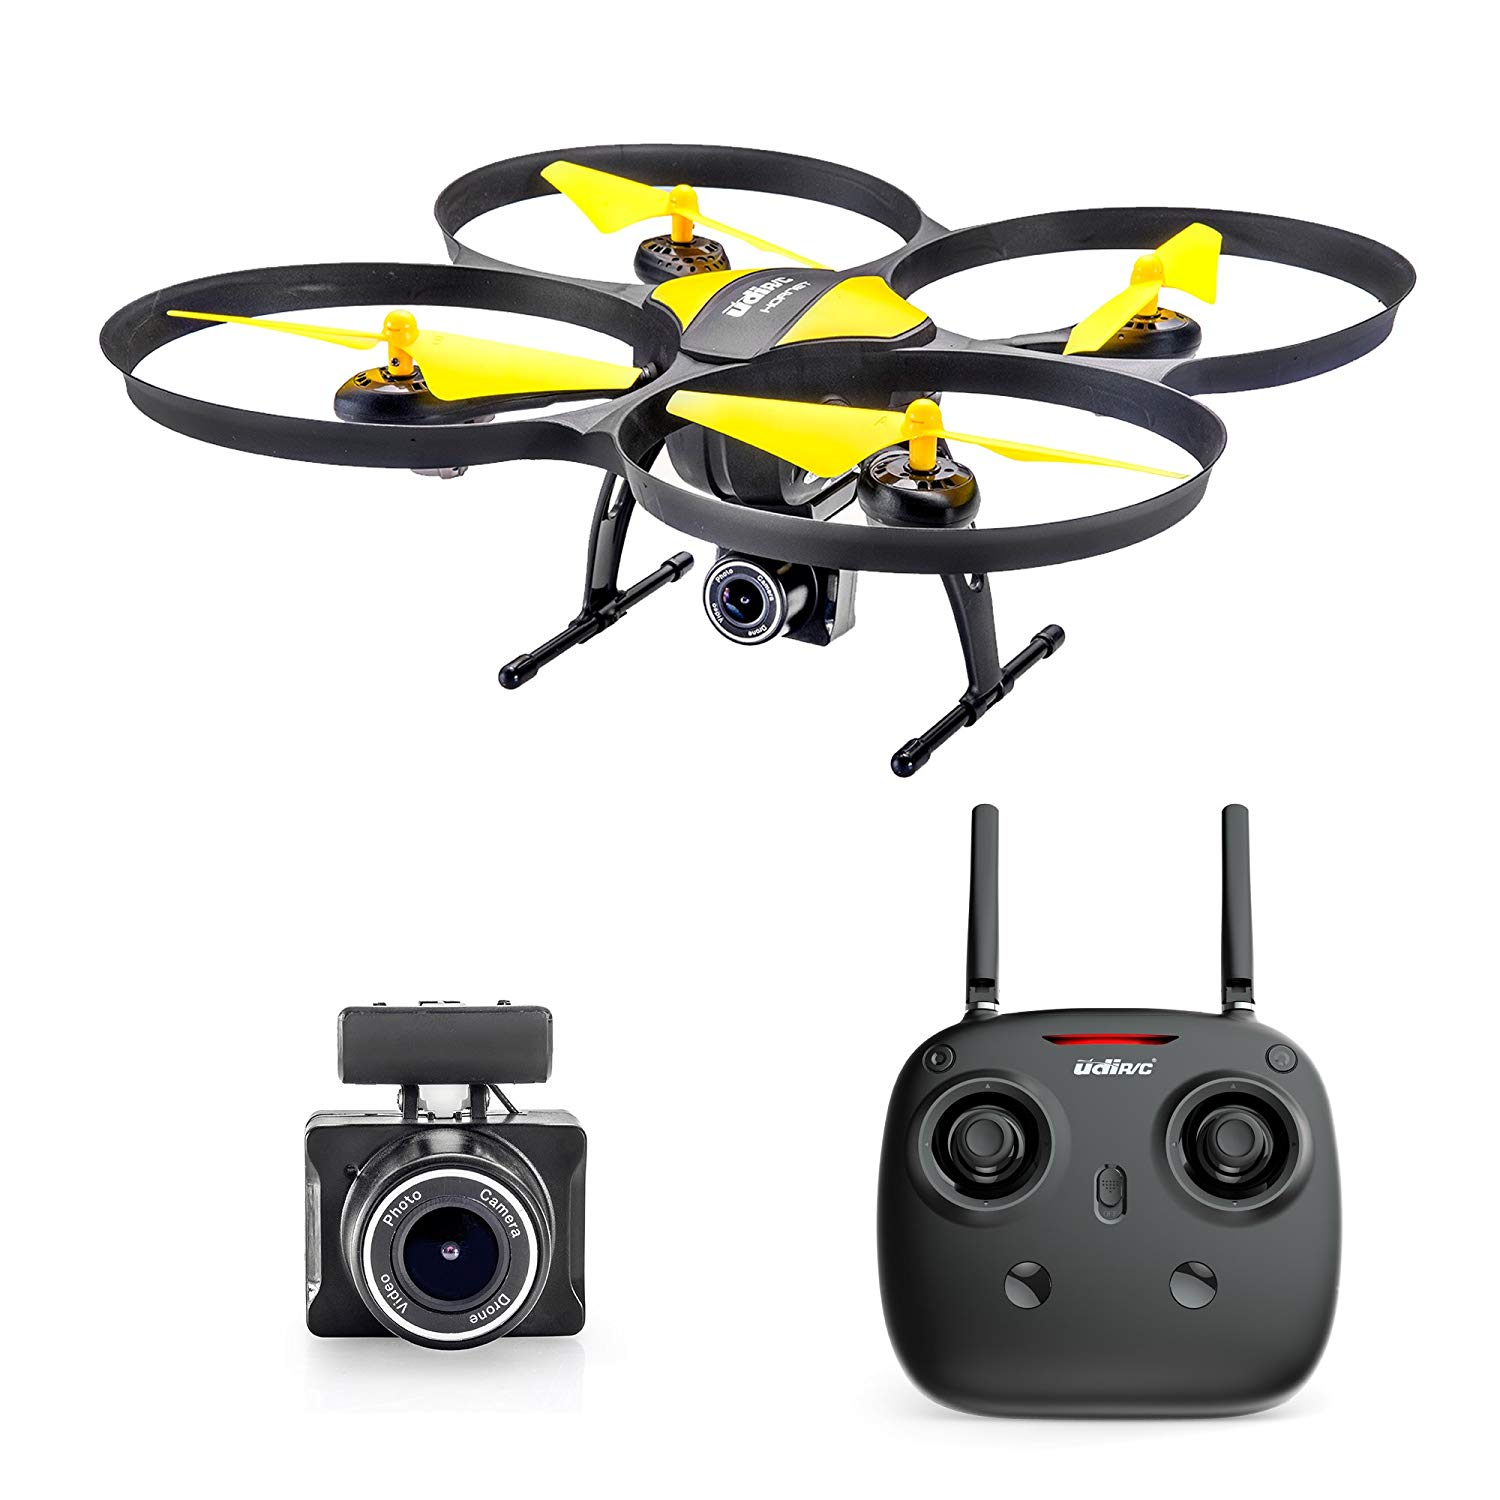 Altar 818 Hornet Beginner Drone with Camera, Live Video Drone